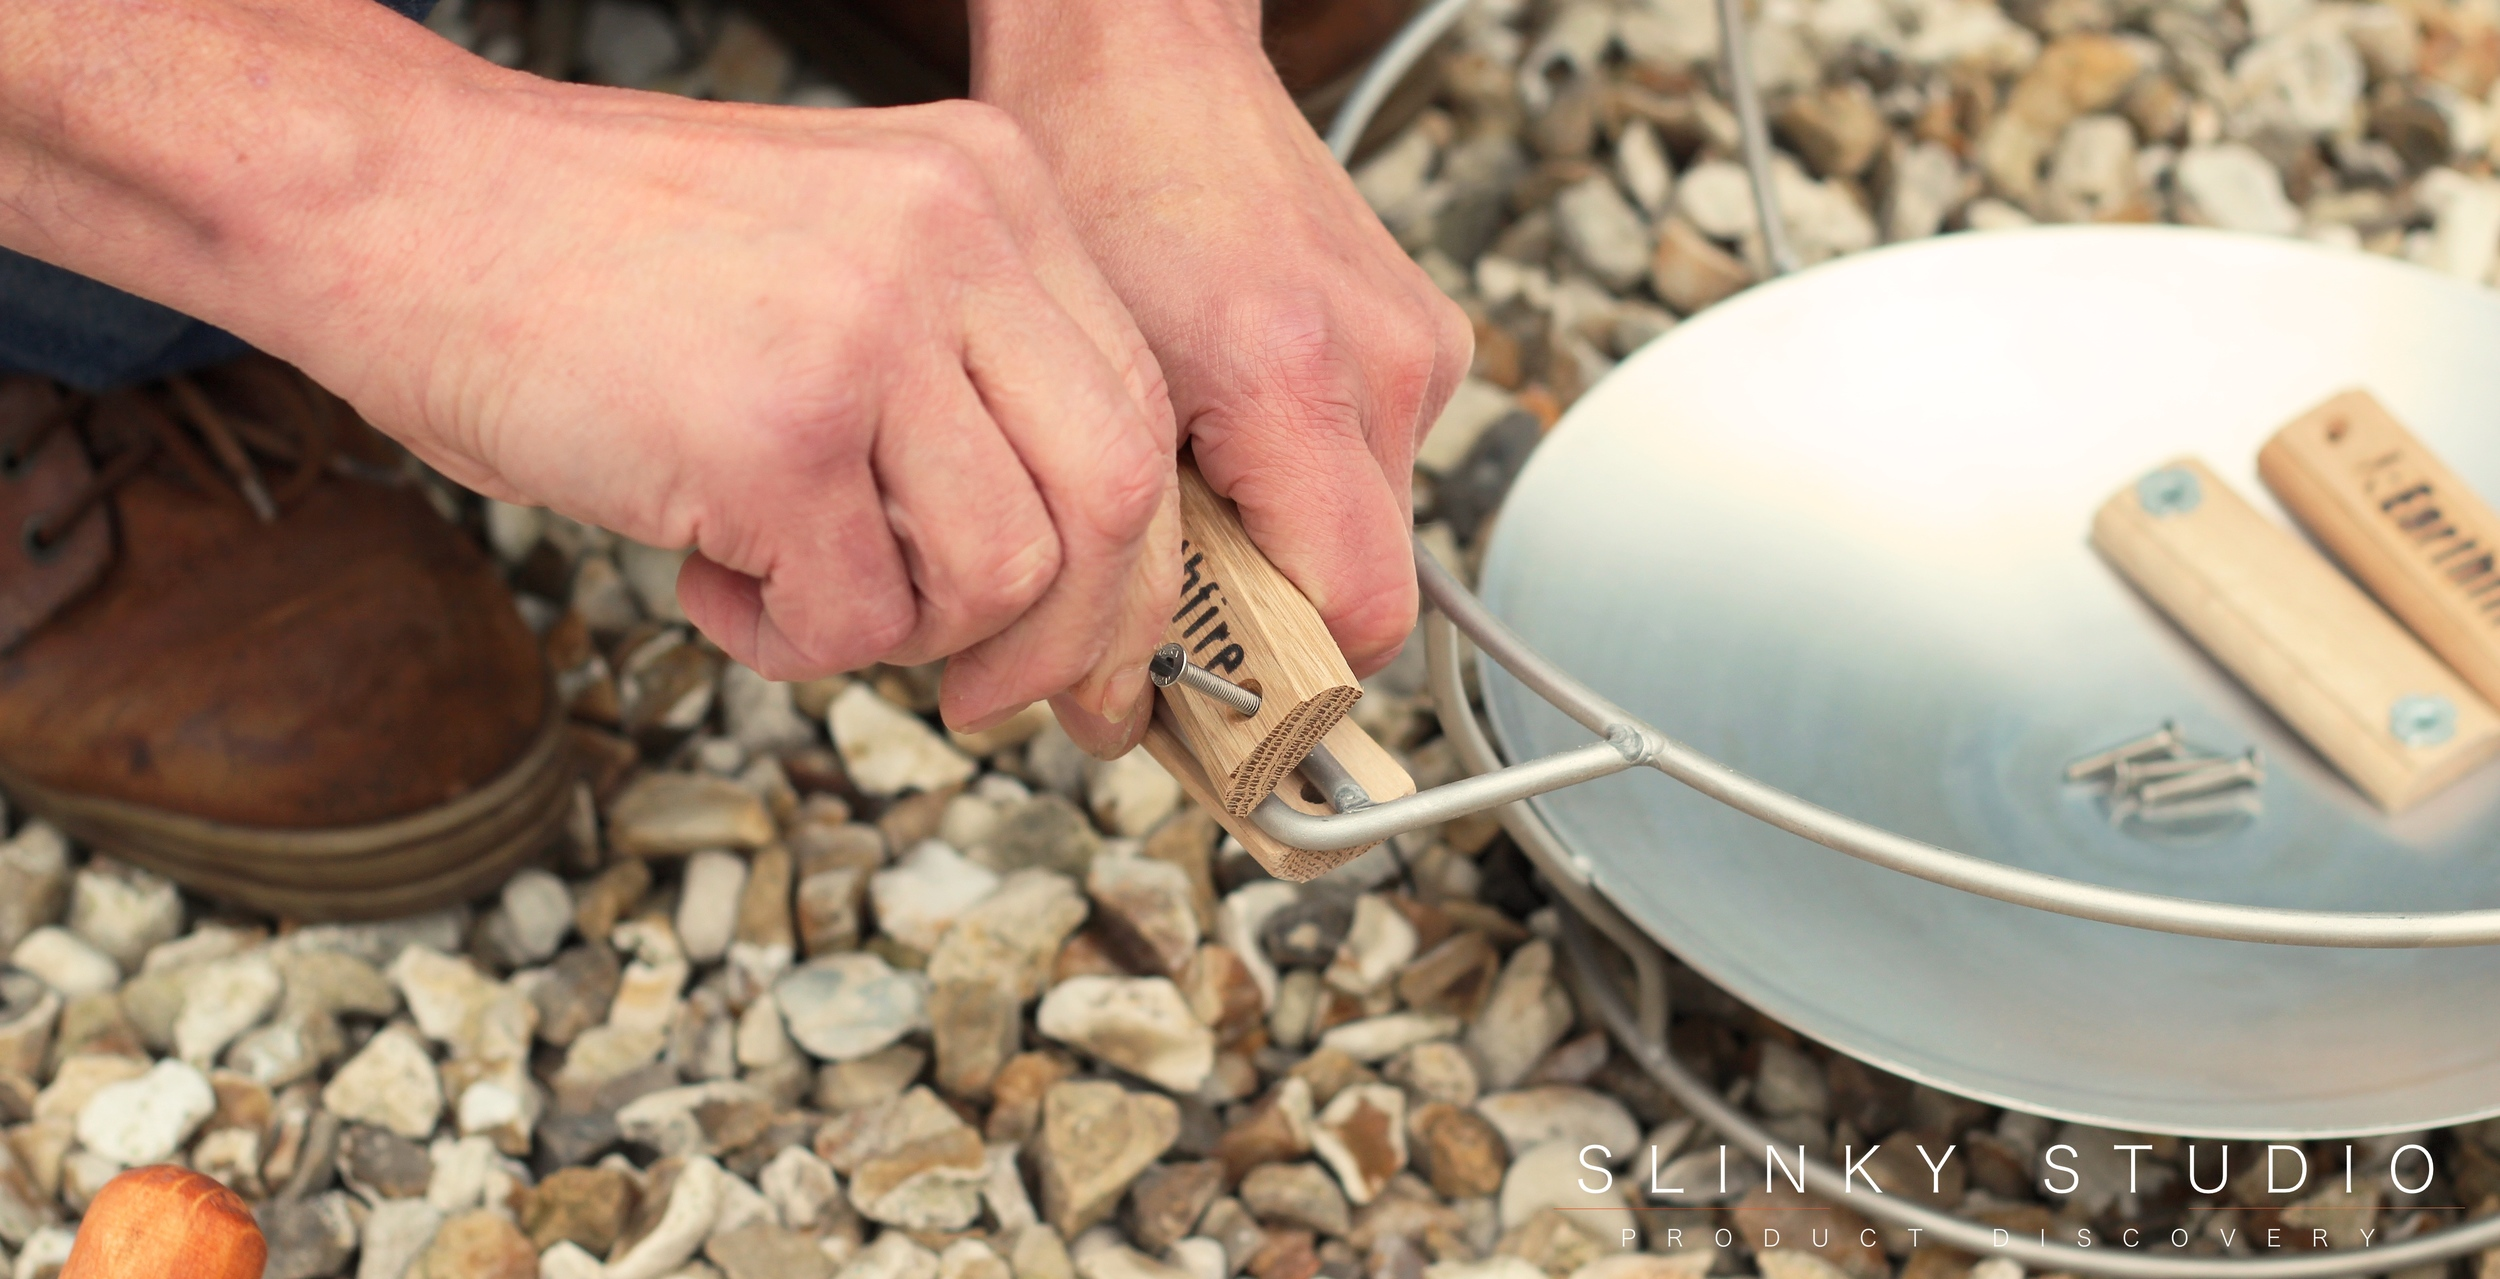 Grenadier Earth Fire Pizza Oven Screwing Handle On.jpg